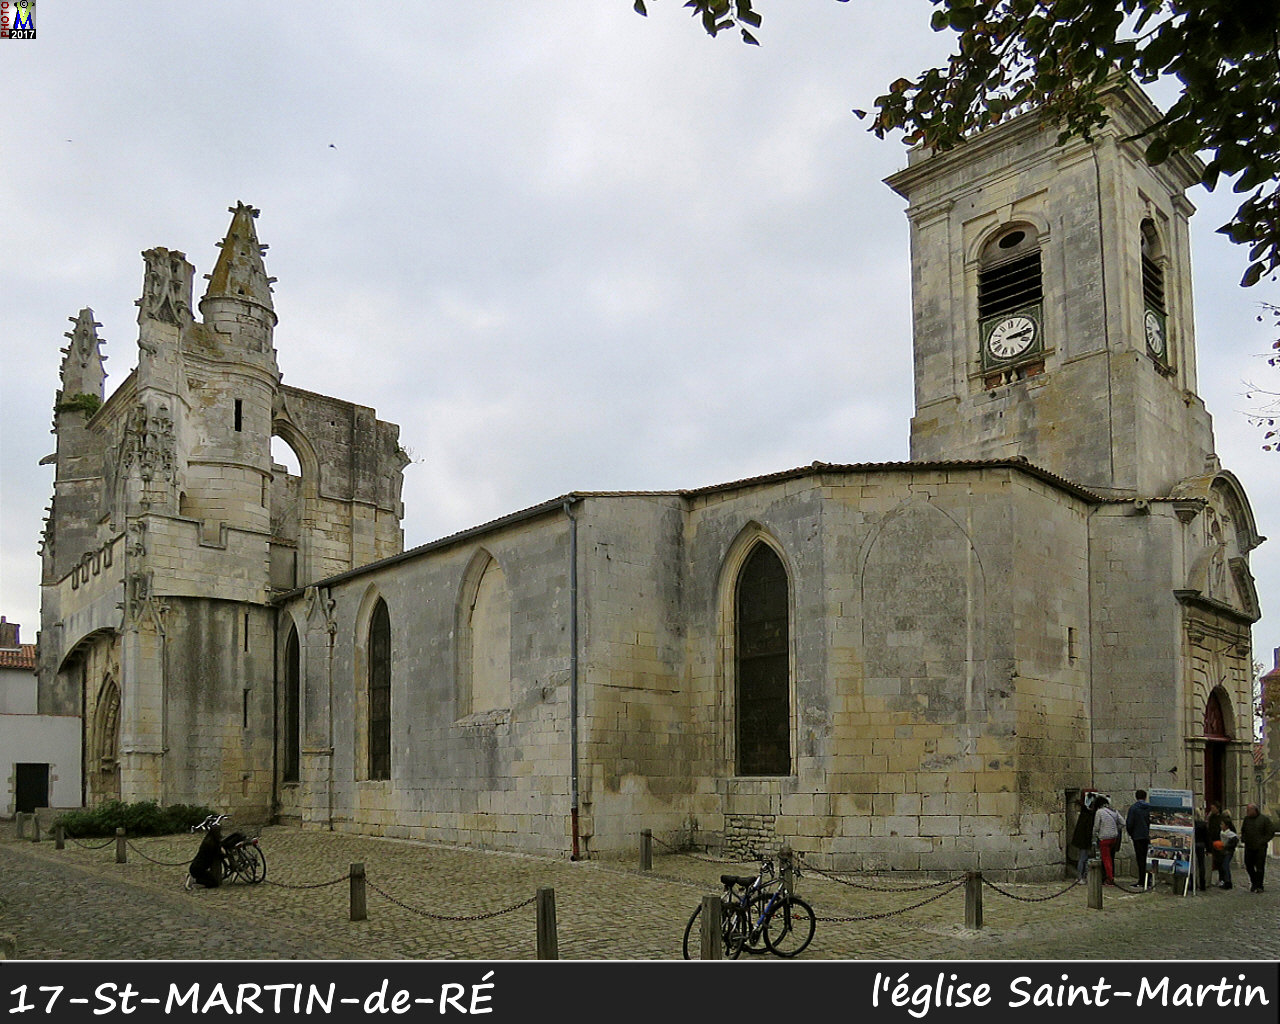 17StMARTIN-RE_eglise_1000.jpg